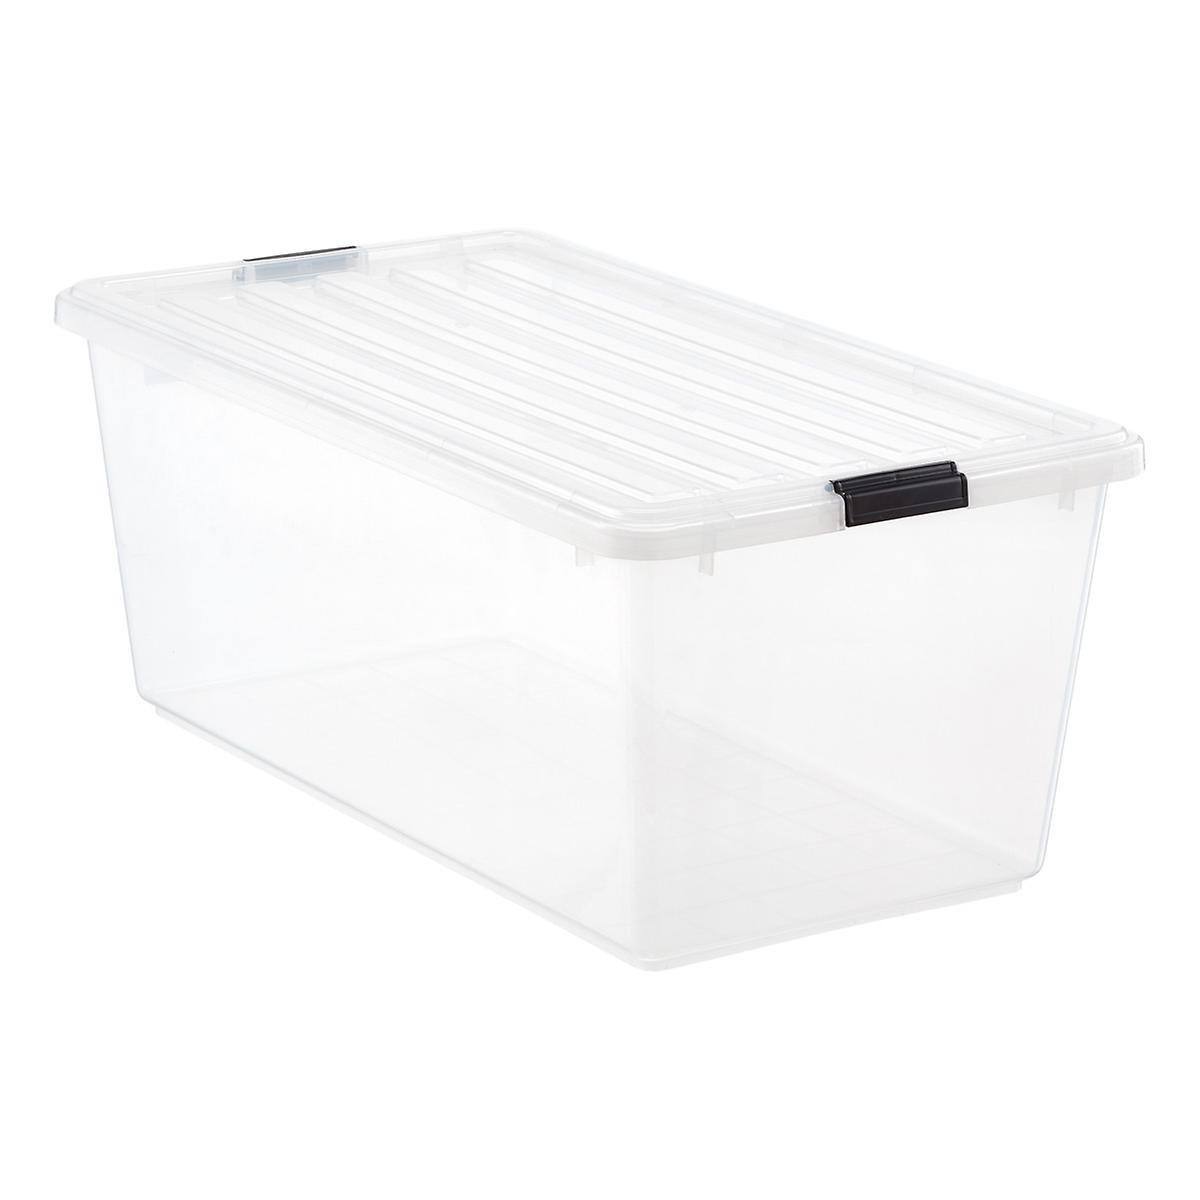 iris gal clear tote with locking lid the container store. Black Bedroom Furniture Sets. Home Design Ideas